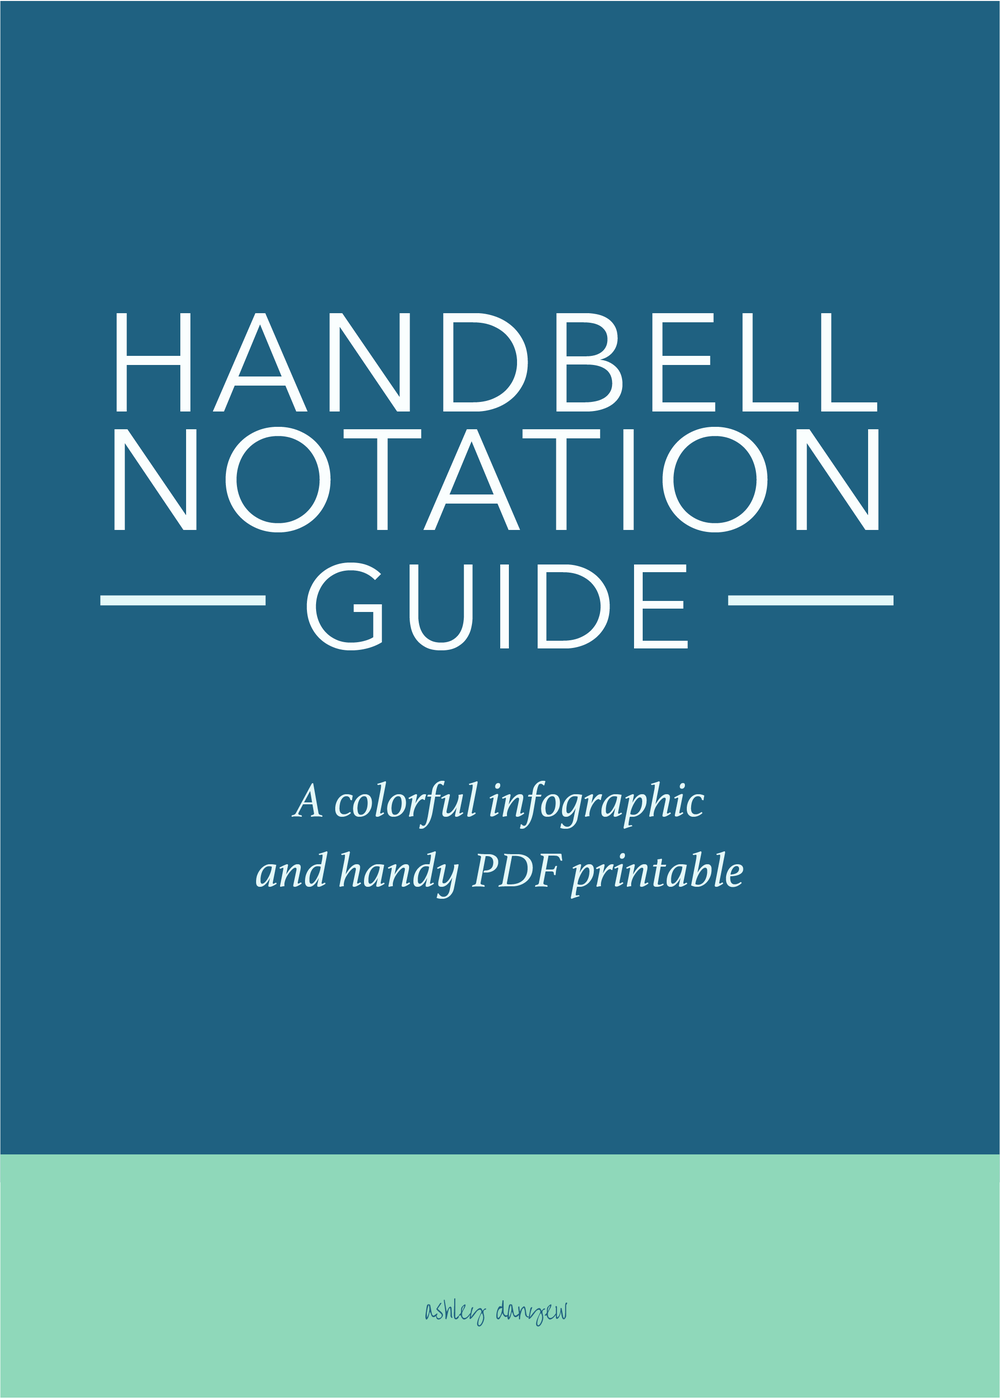 Handbell Notation Guide [Infographic]